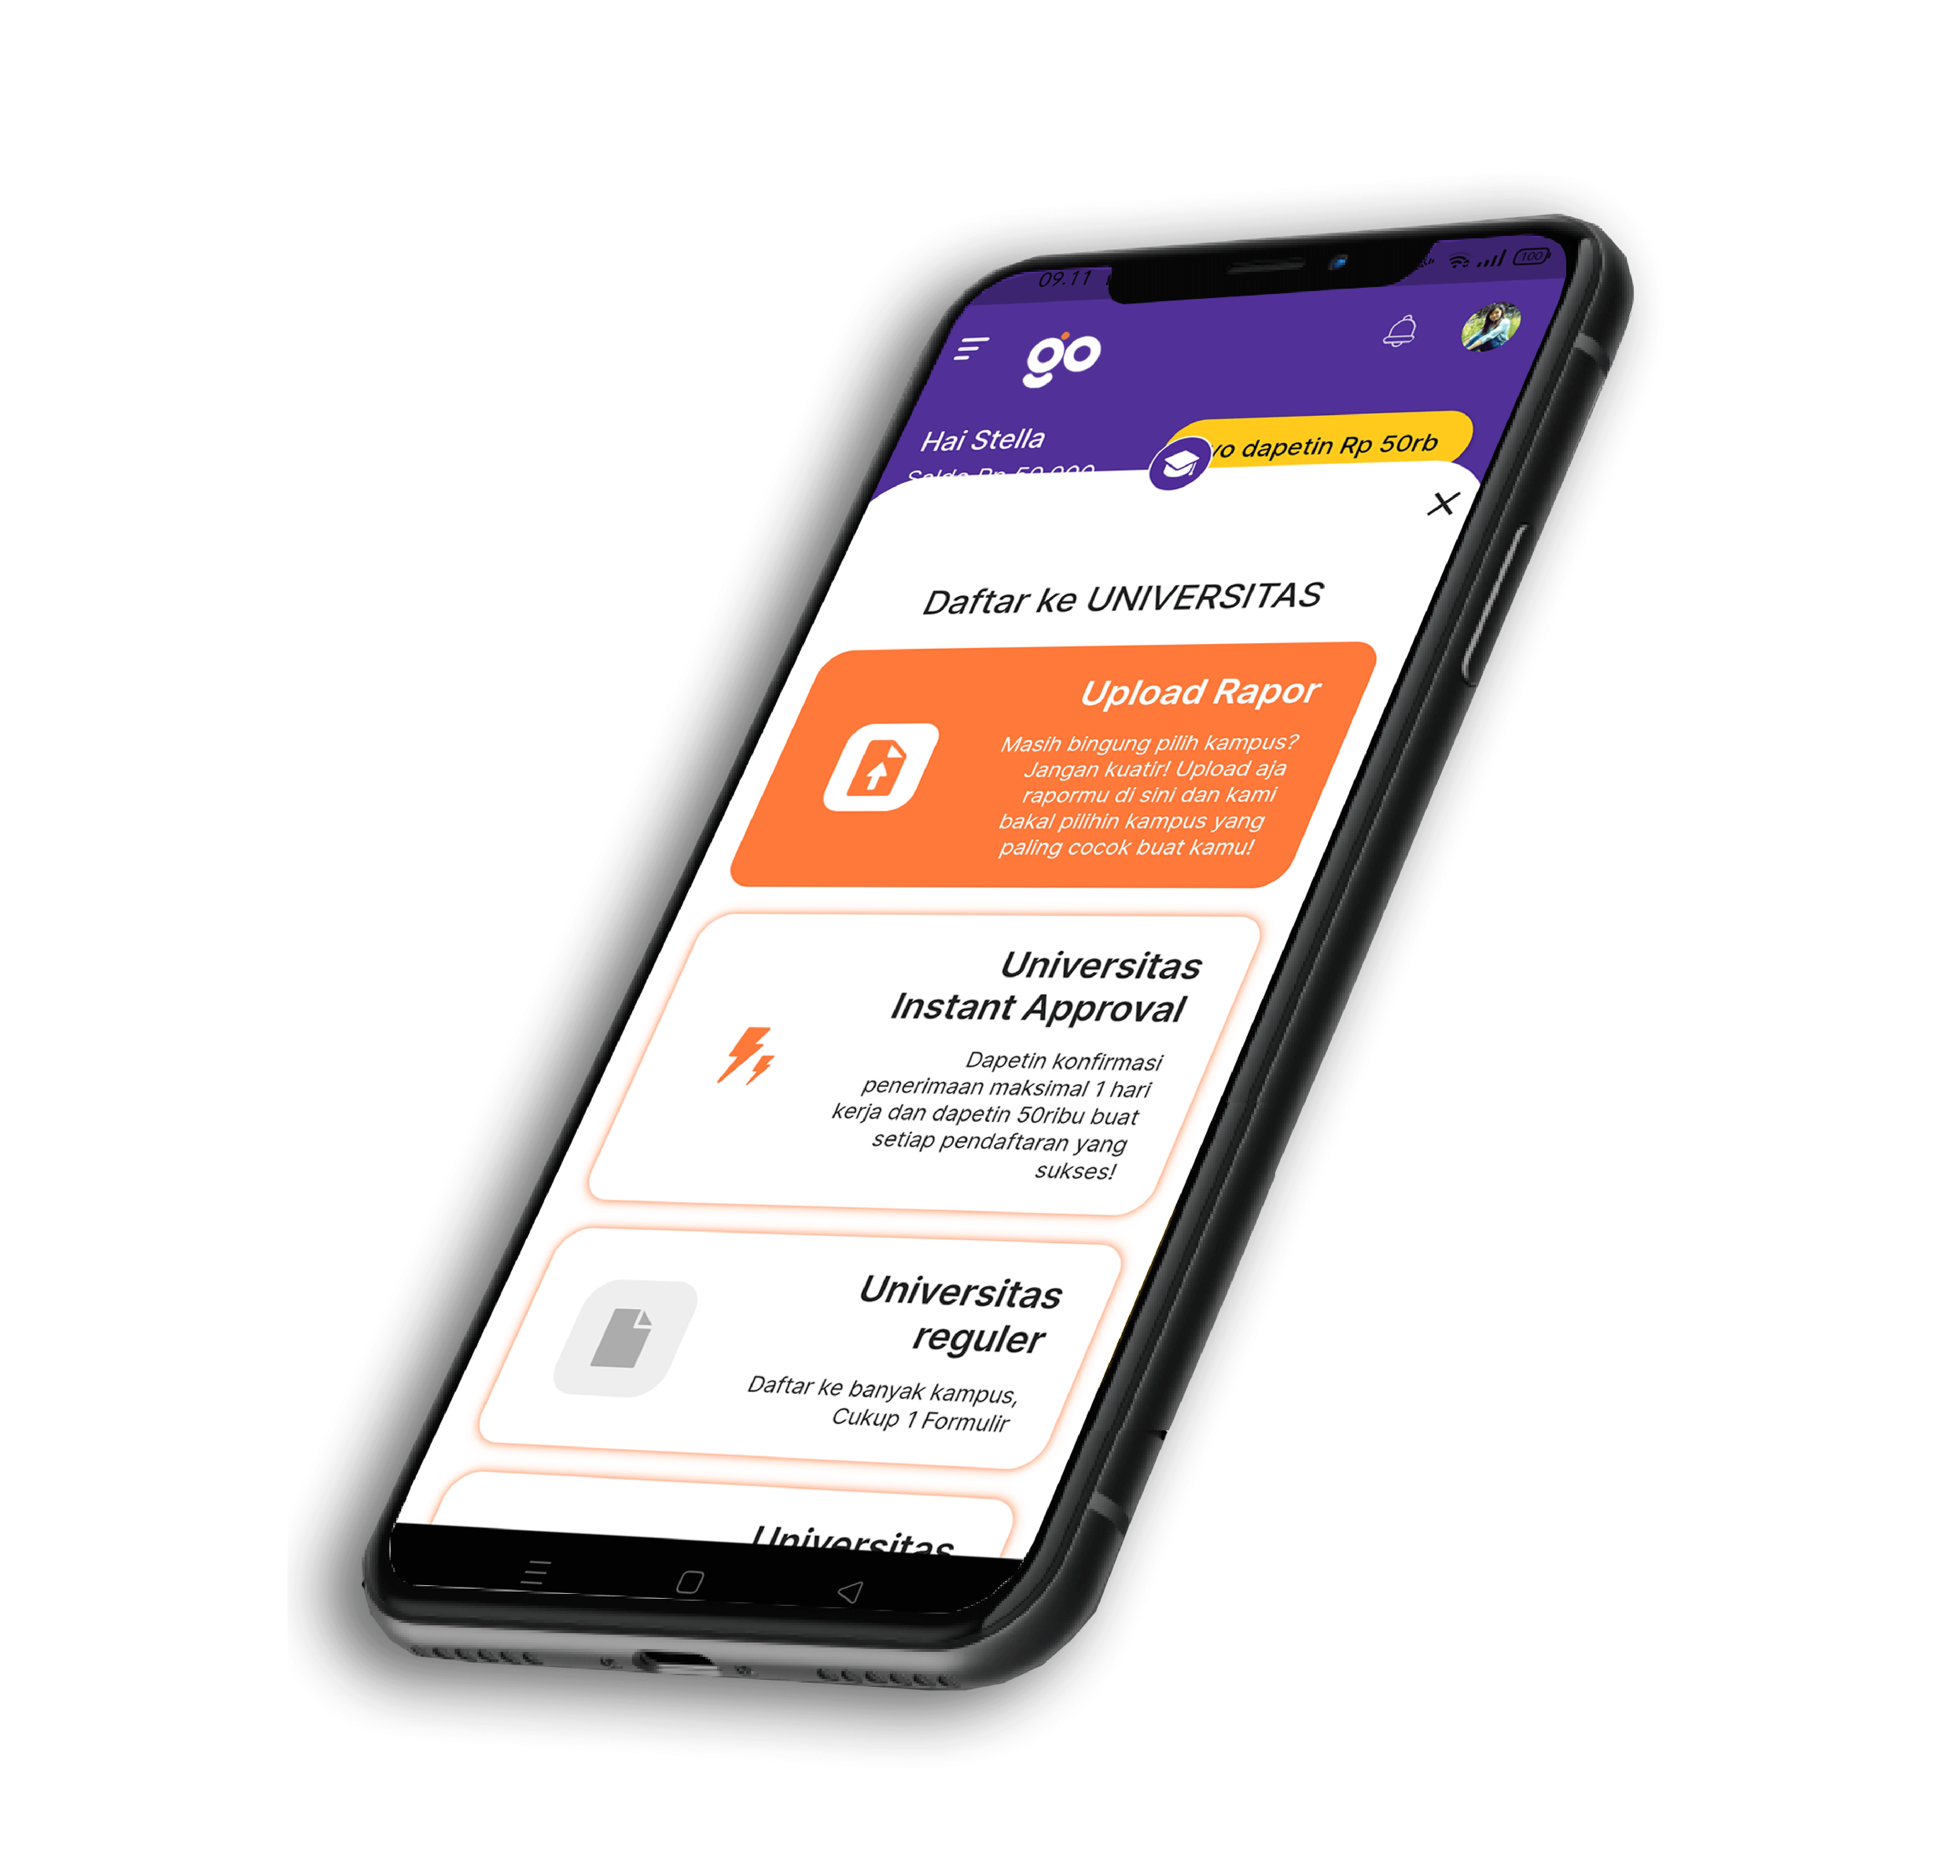 goKampus Mobile Application